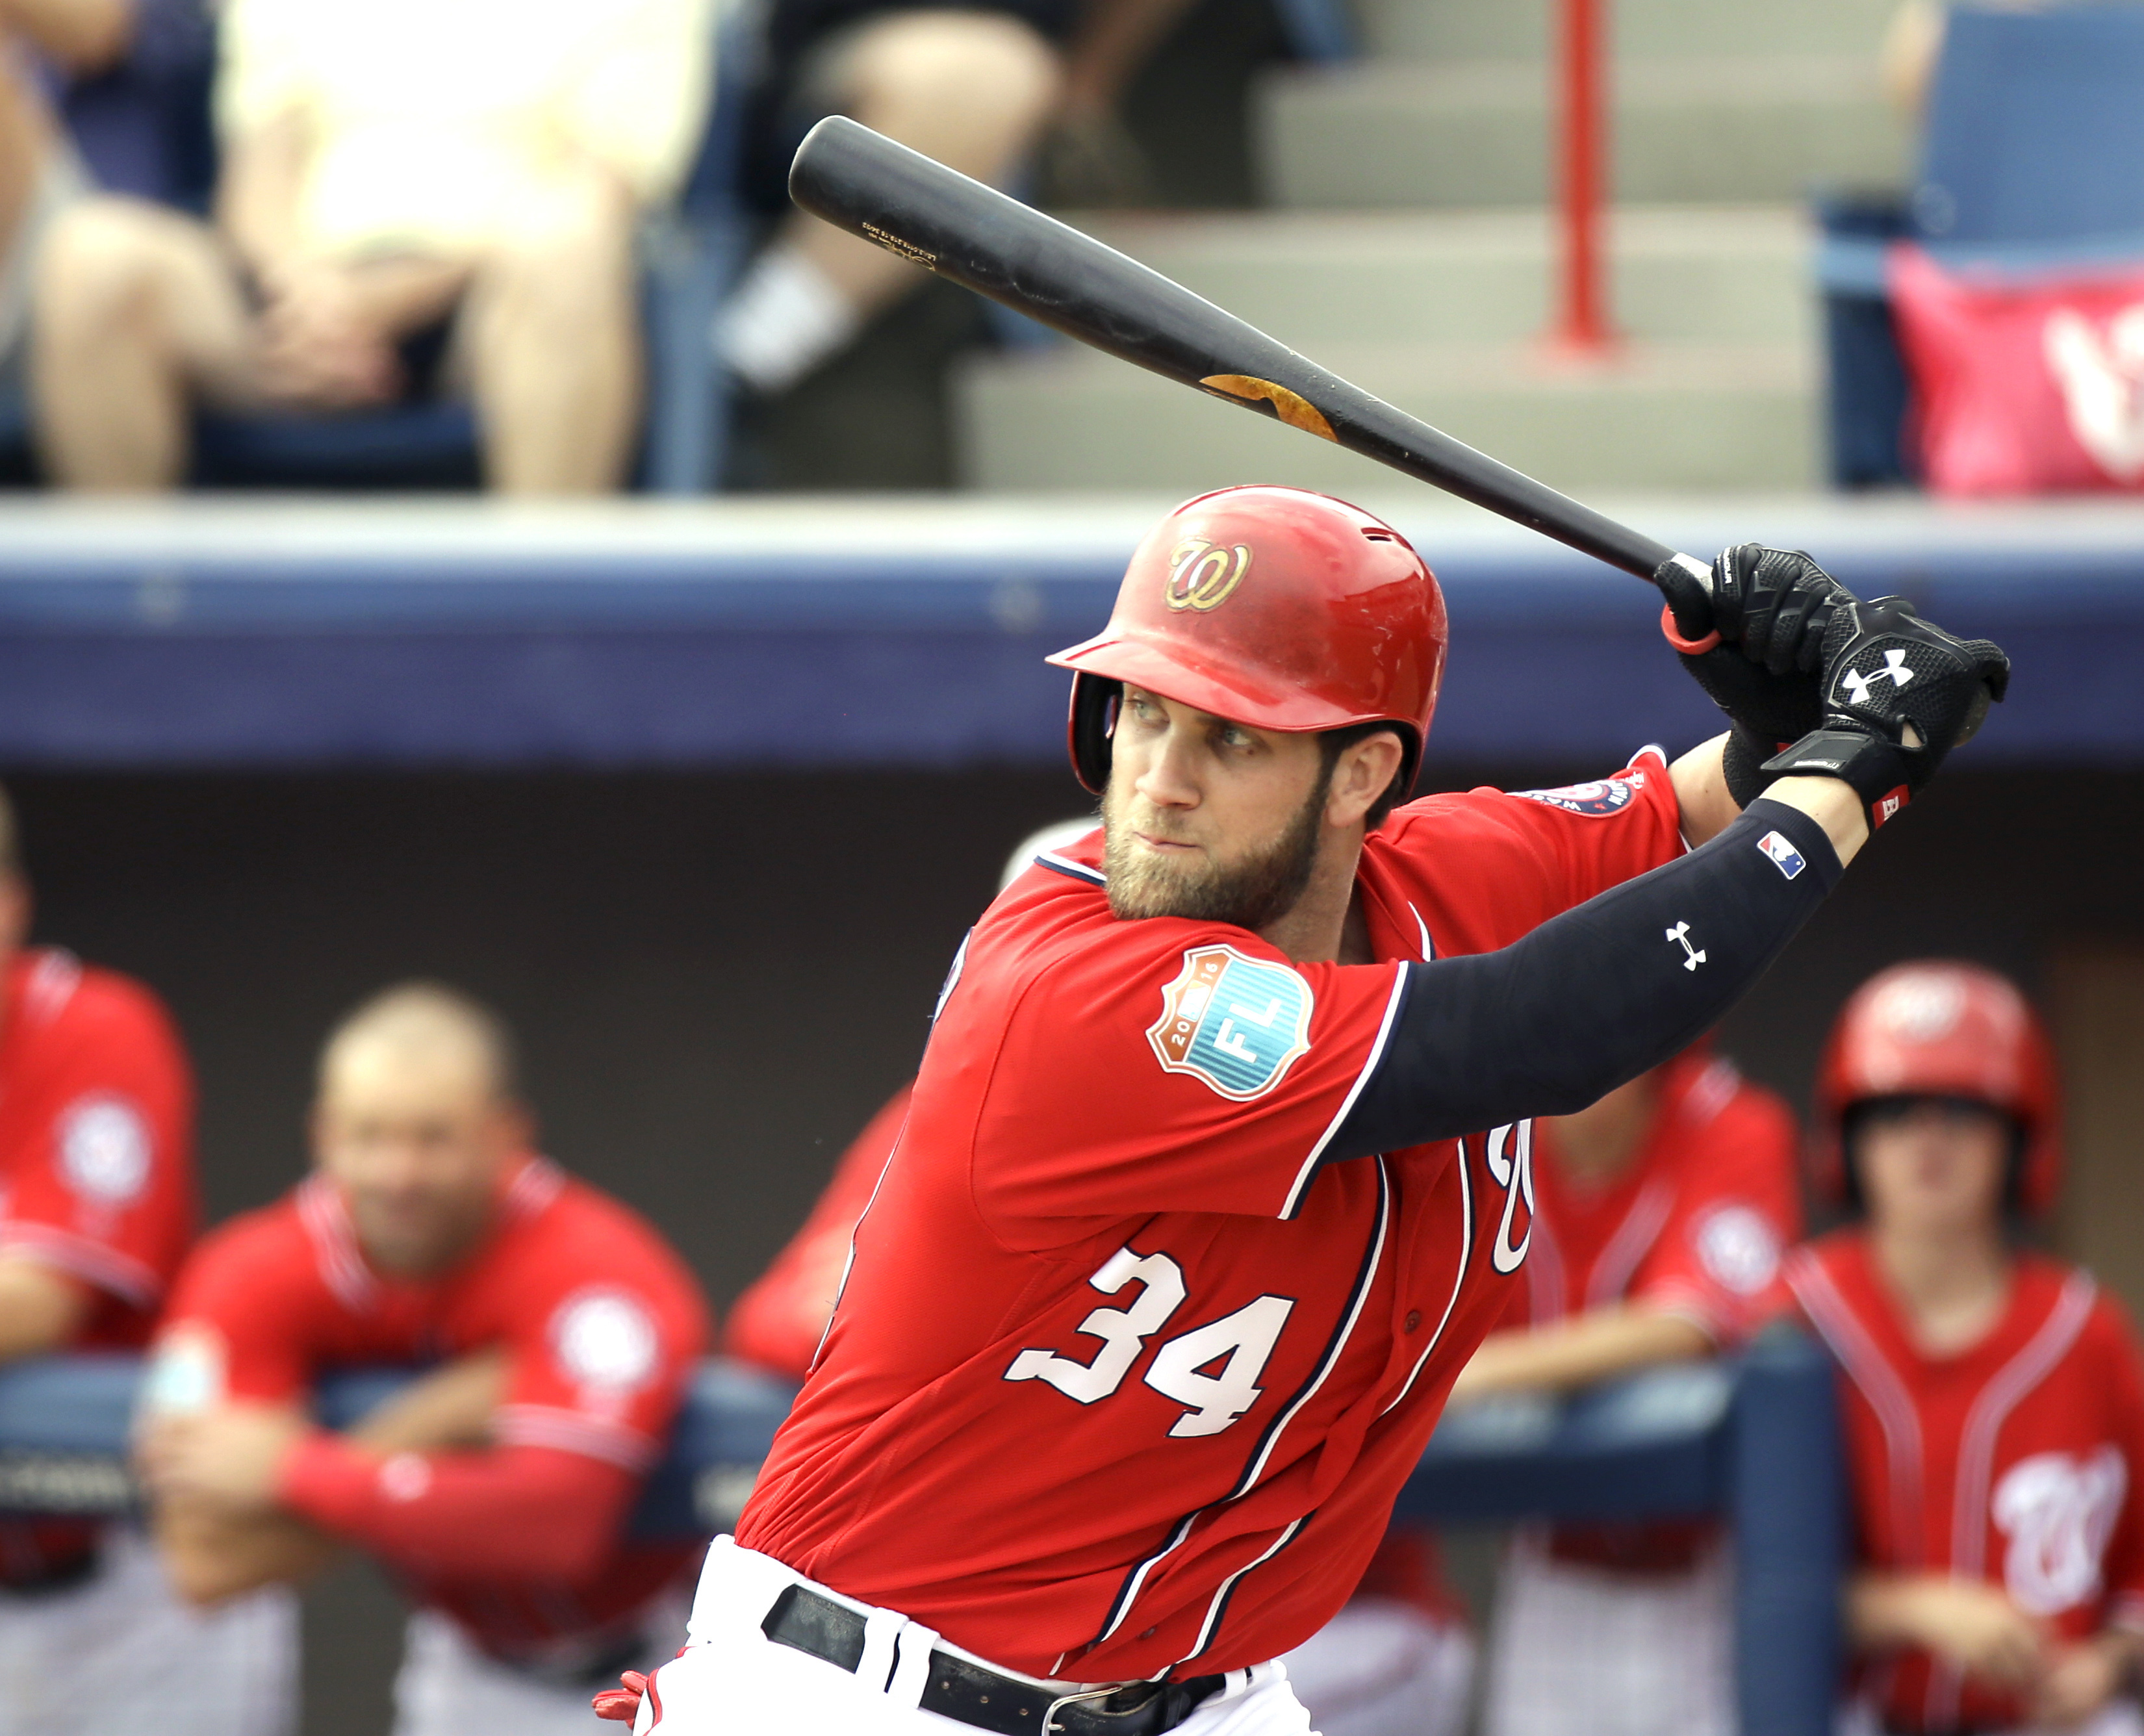 FILE - In this March 5, 2016, file photo, Washington Nationals' Bryce Harper (34) bats against the Detroit Tigers in a spring training baseball gamein Viera, Fla. The plan is for Harper, the reigning MVP, to headline a lineup that includes ex-Mets second